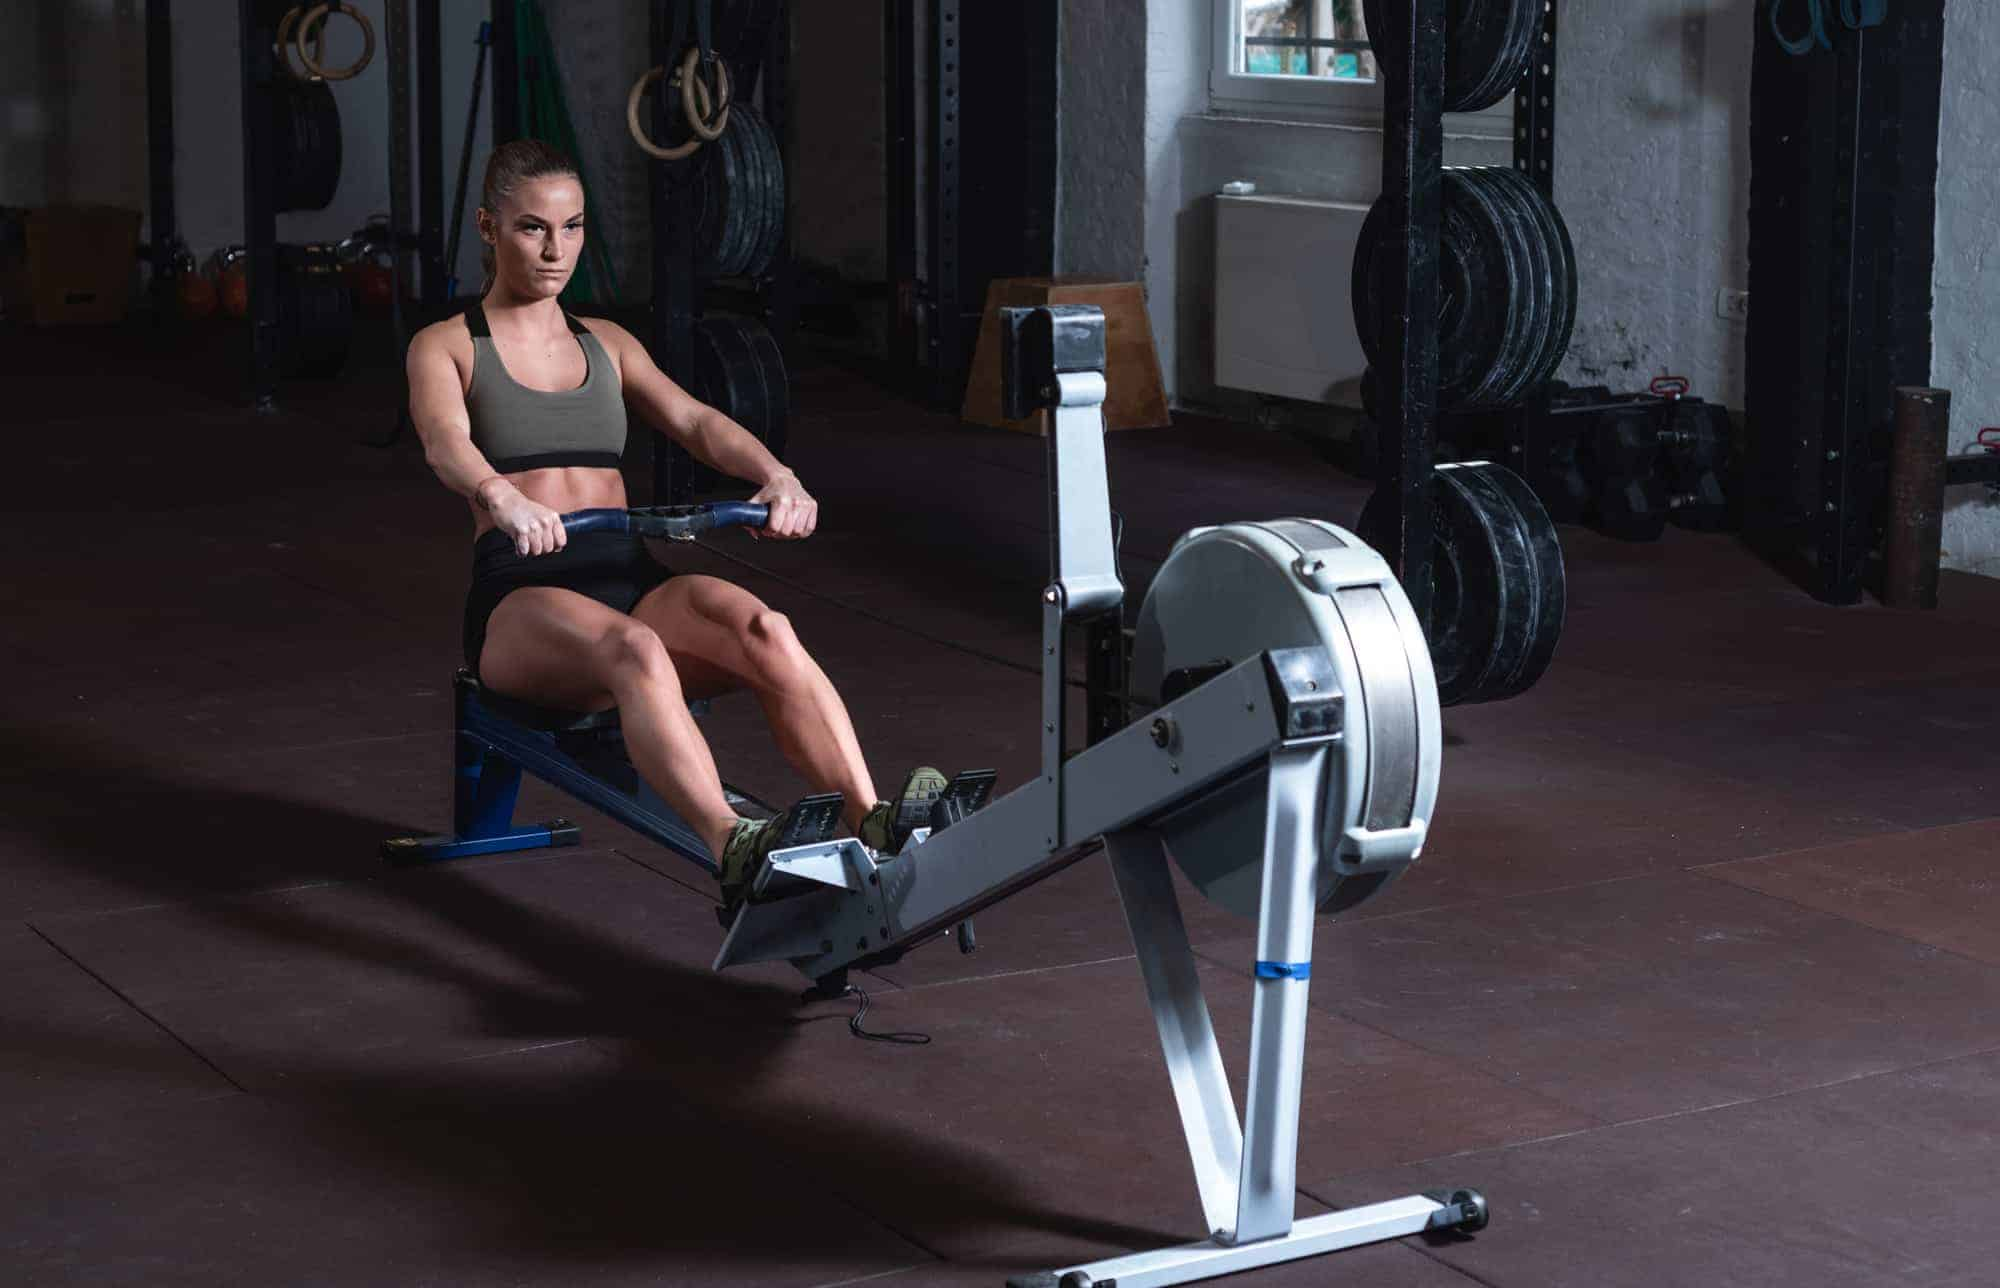 lady reading monitor on machine to see how many calories burned rowing